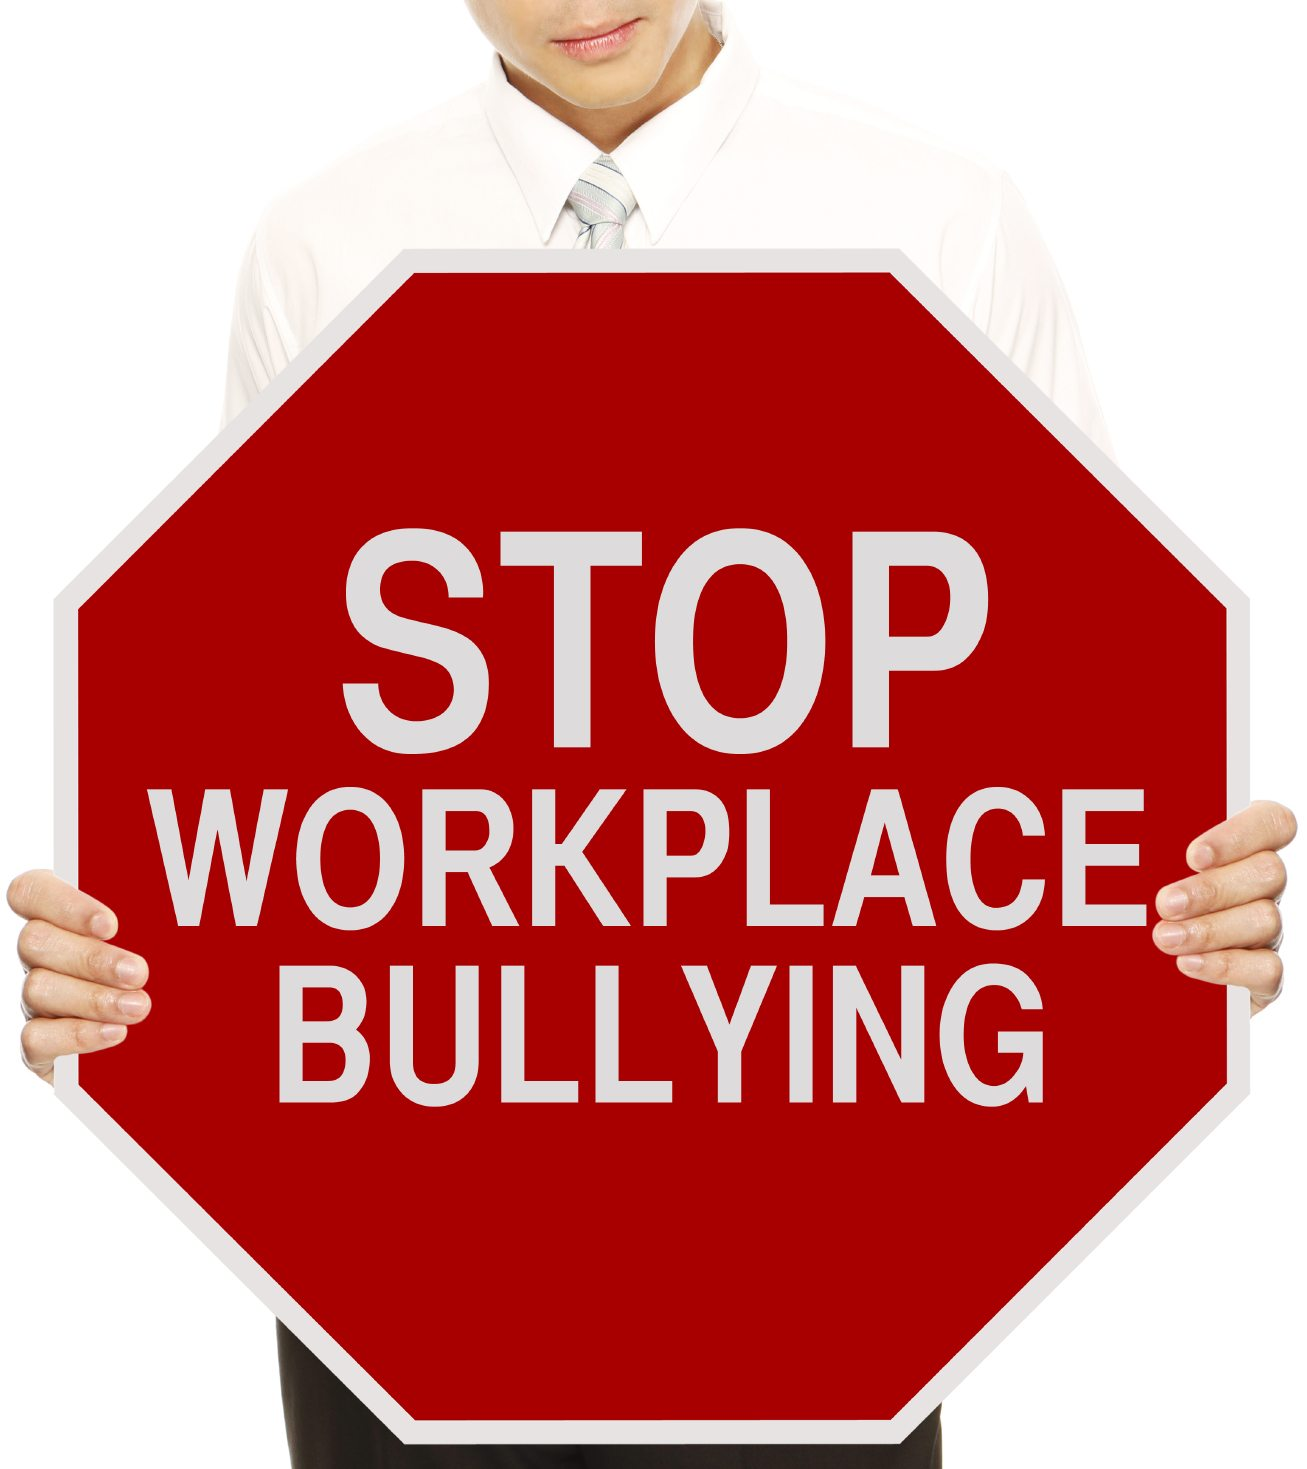 strategies to combat workplace bullying Female bullying in the workplace list differences of the ways in which men and women exhibit workplace bullying list strategies on how to combat workplace.